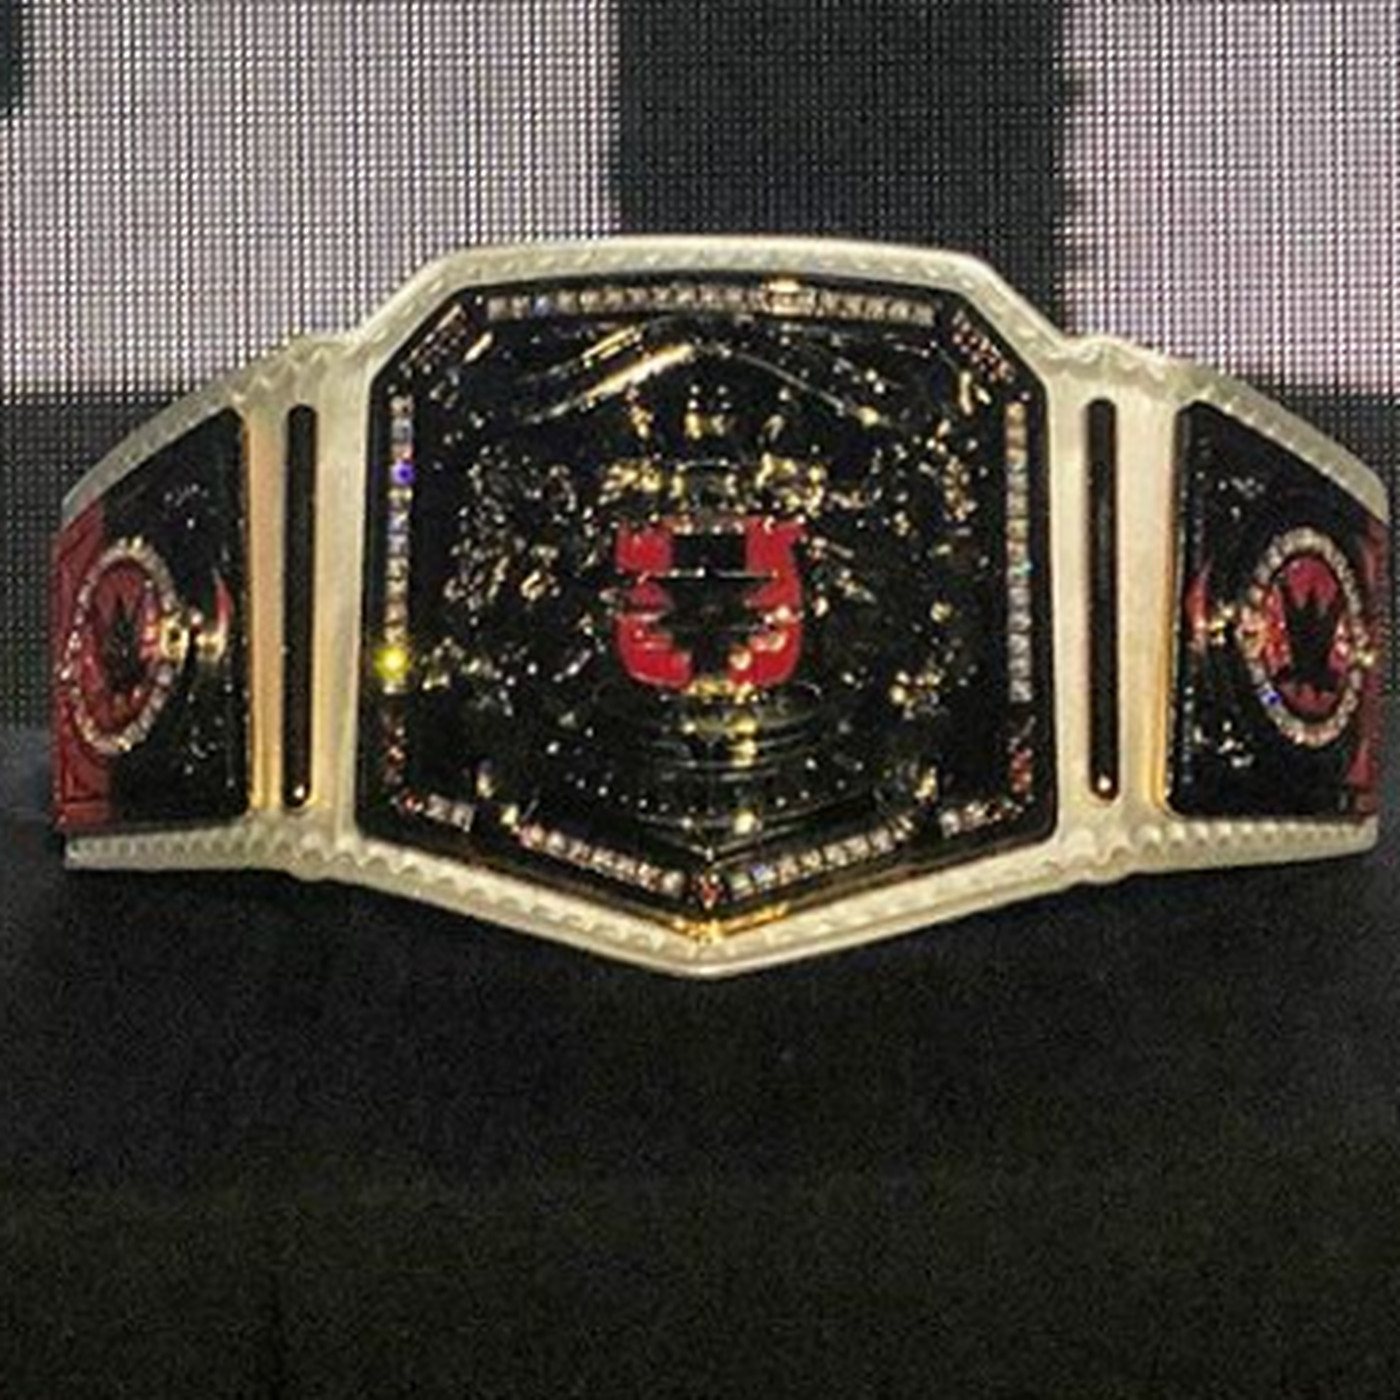 f6345d9a4 First ever NXT UK women s champion crowned (SPOILERS) - Cageside Seats